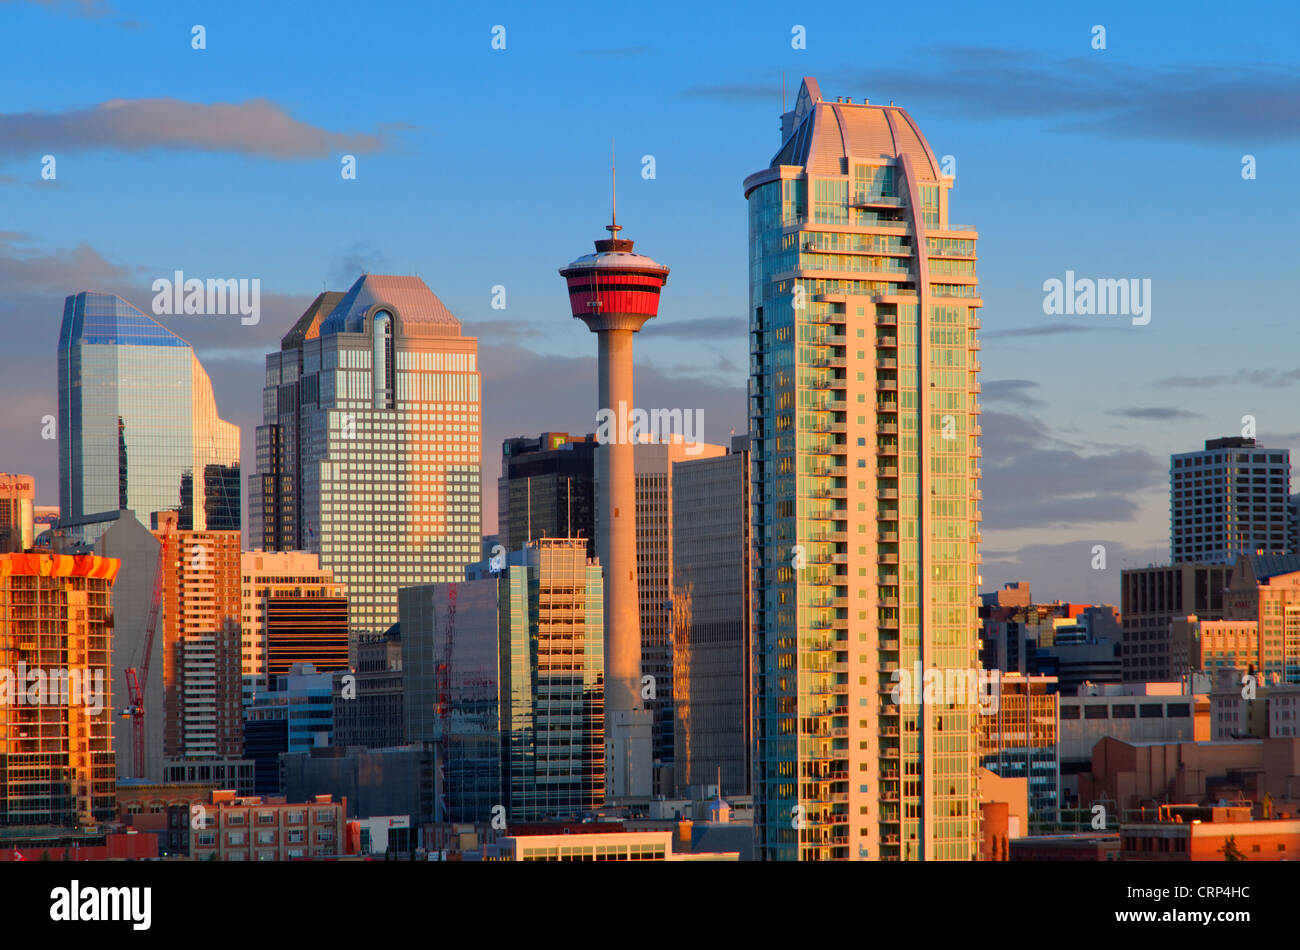 Downtown skyline at dawn, Calgary, Alberta, Canada - Stock Image